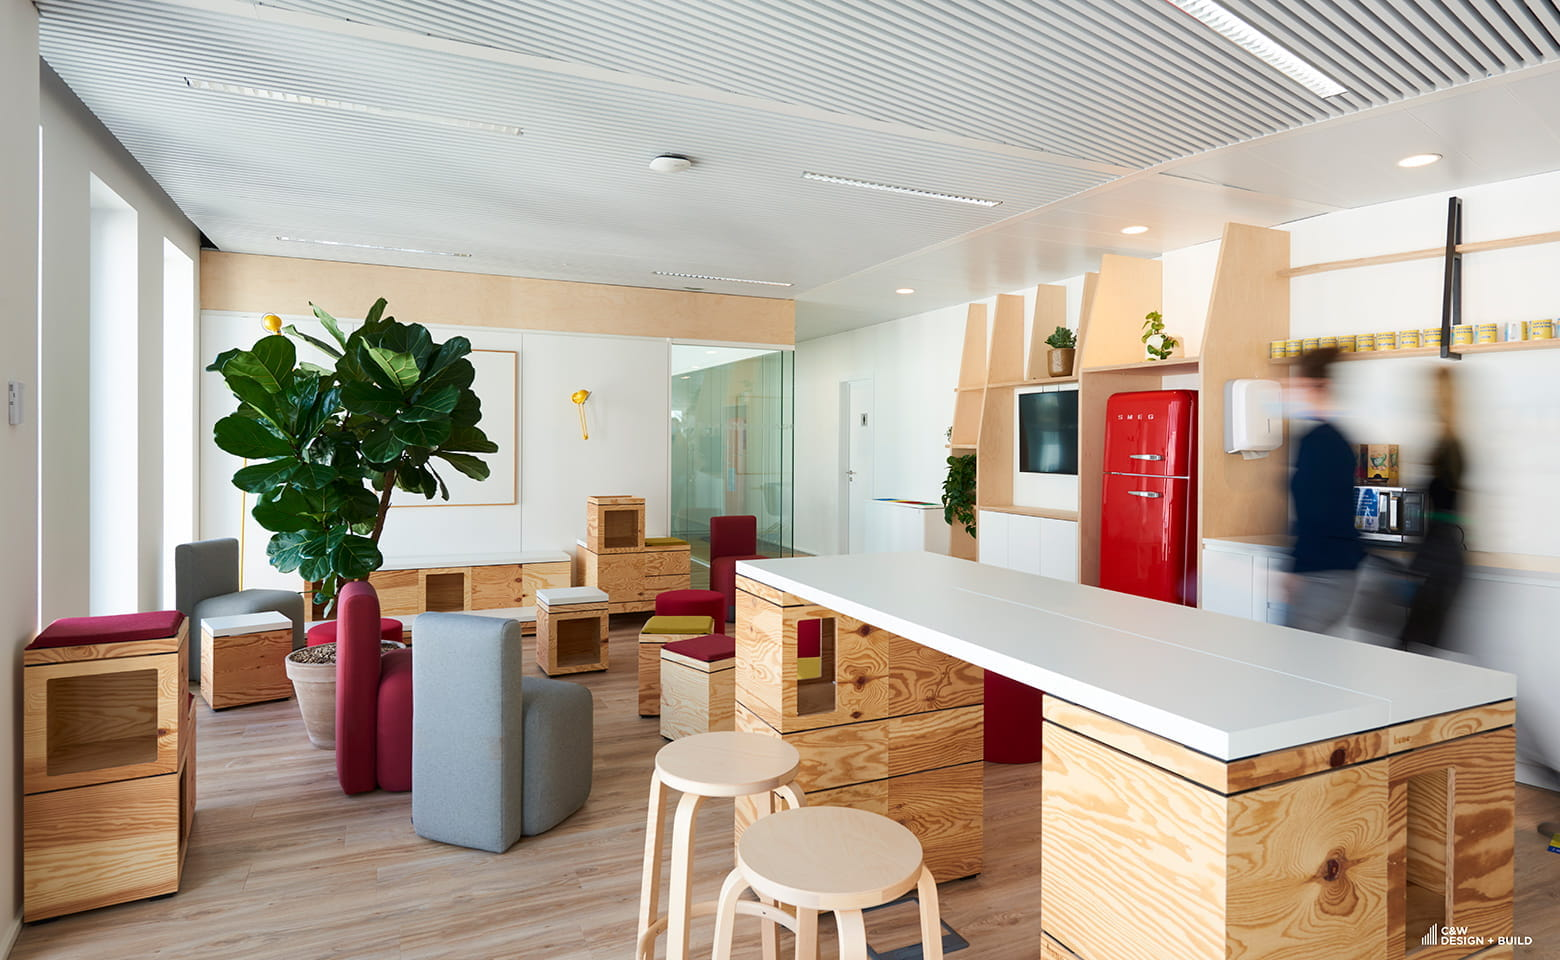 Unilever new offices by Cushman & Wakefield Design + Build